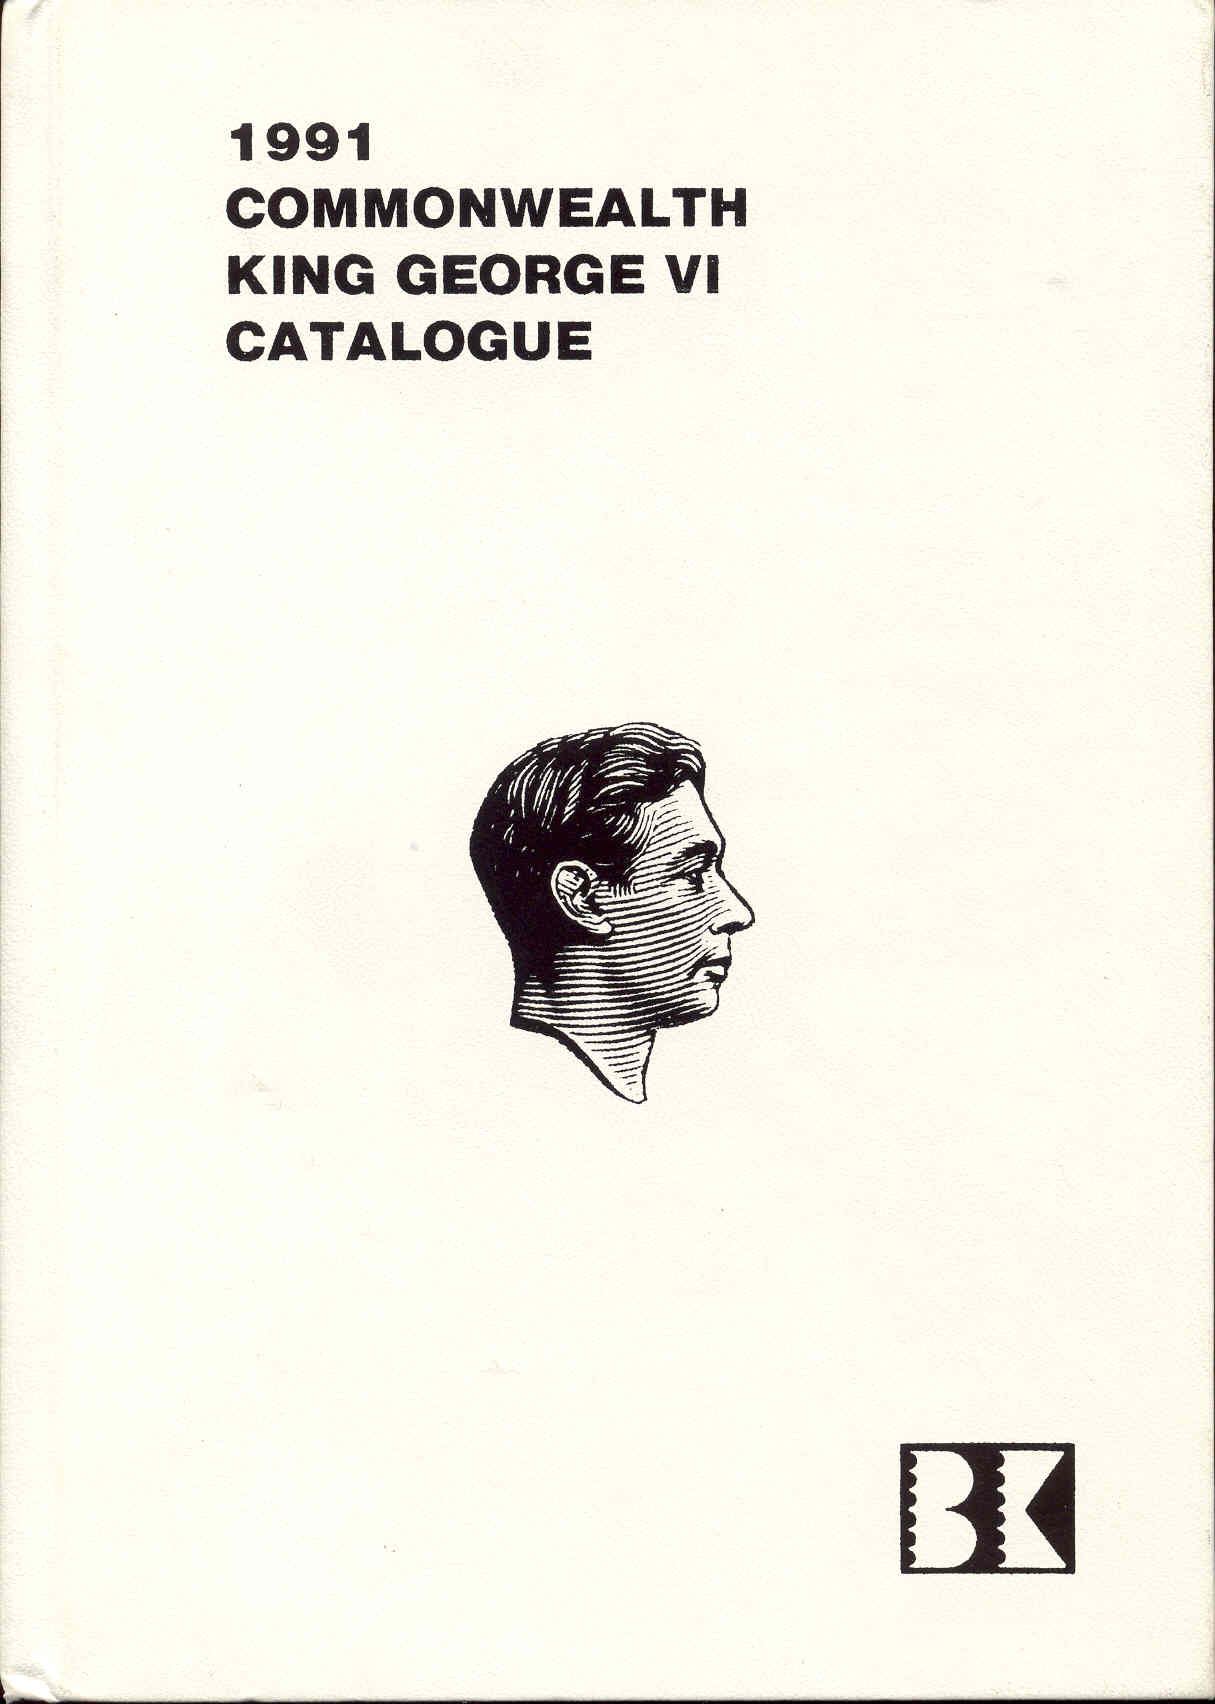 Image for King George VI Commonwealth Postage Stamp Catalogue 1991